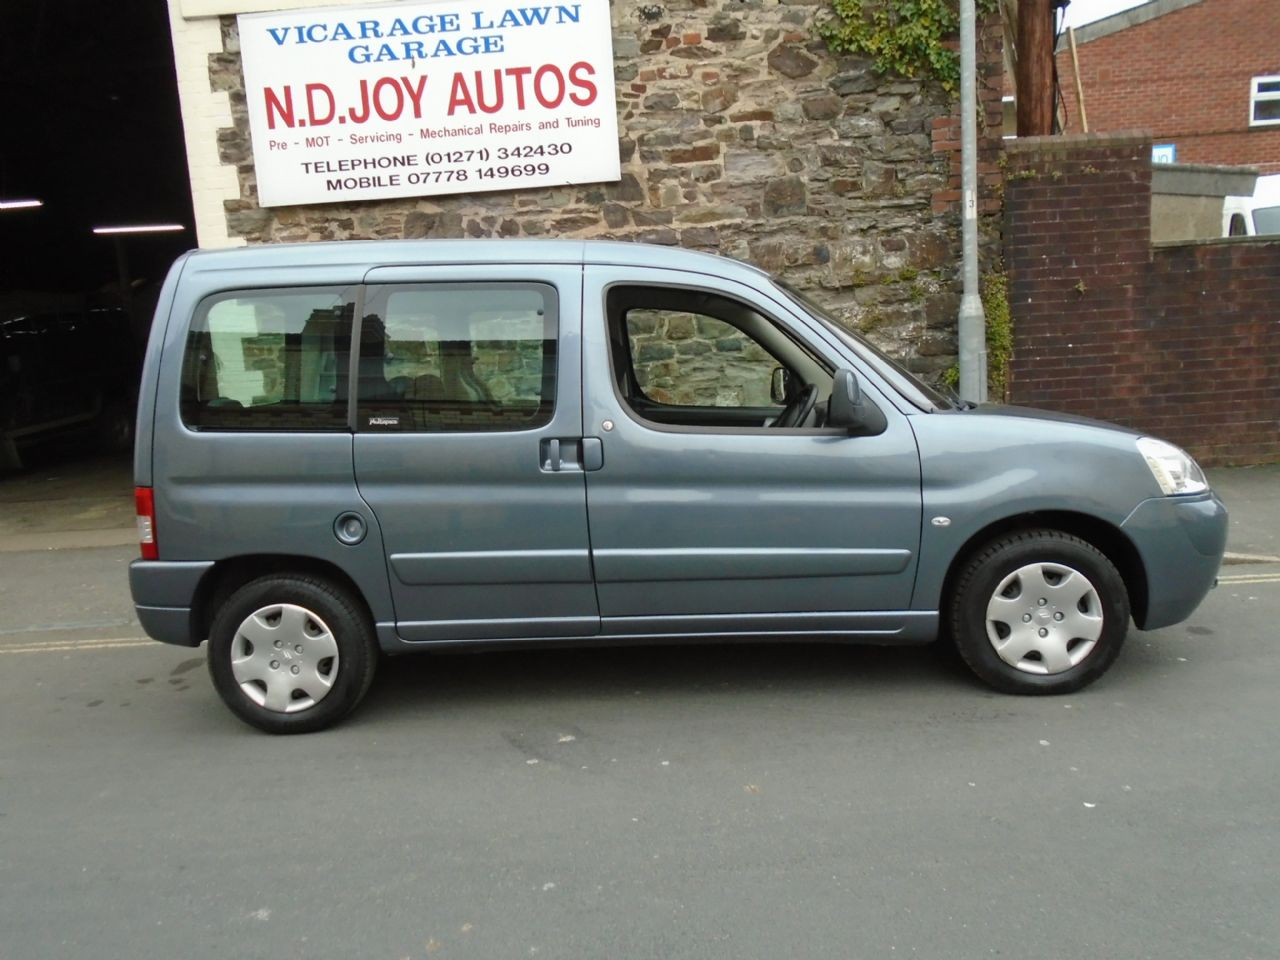 CITROENBERLINGO FIRST1.4i 75hp for sale